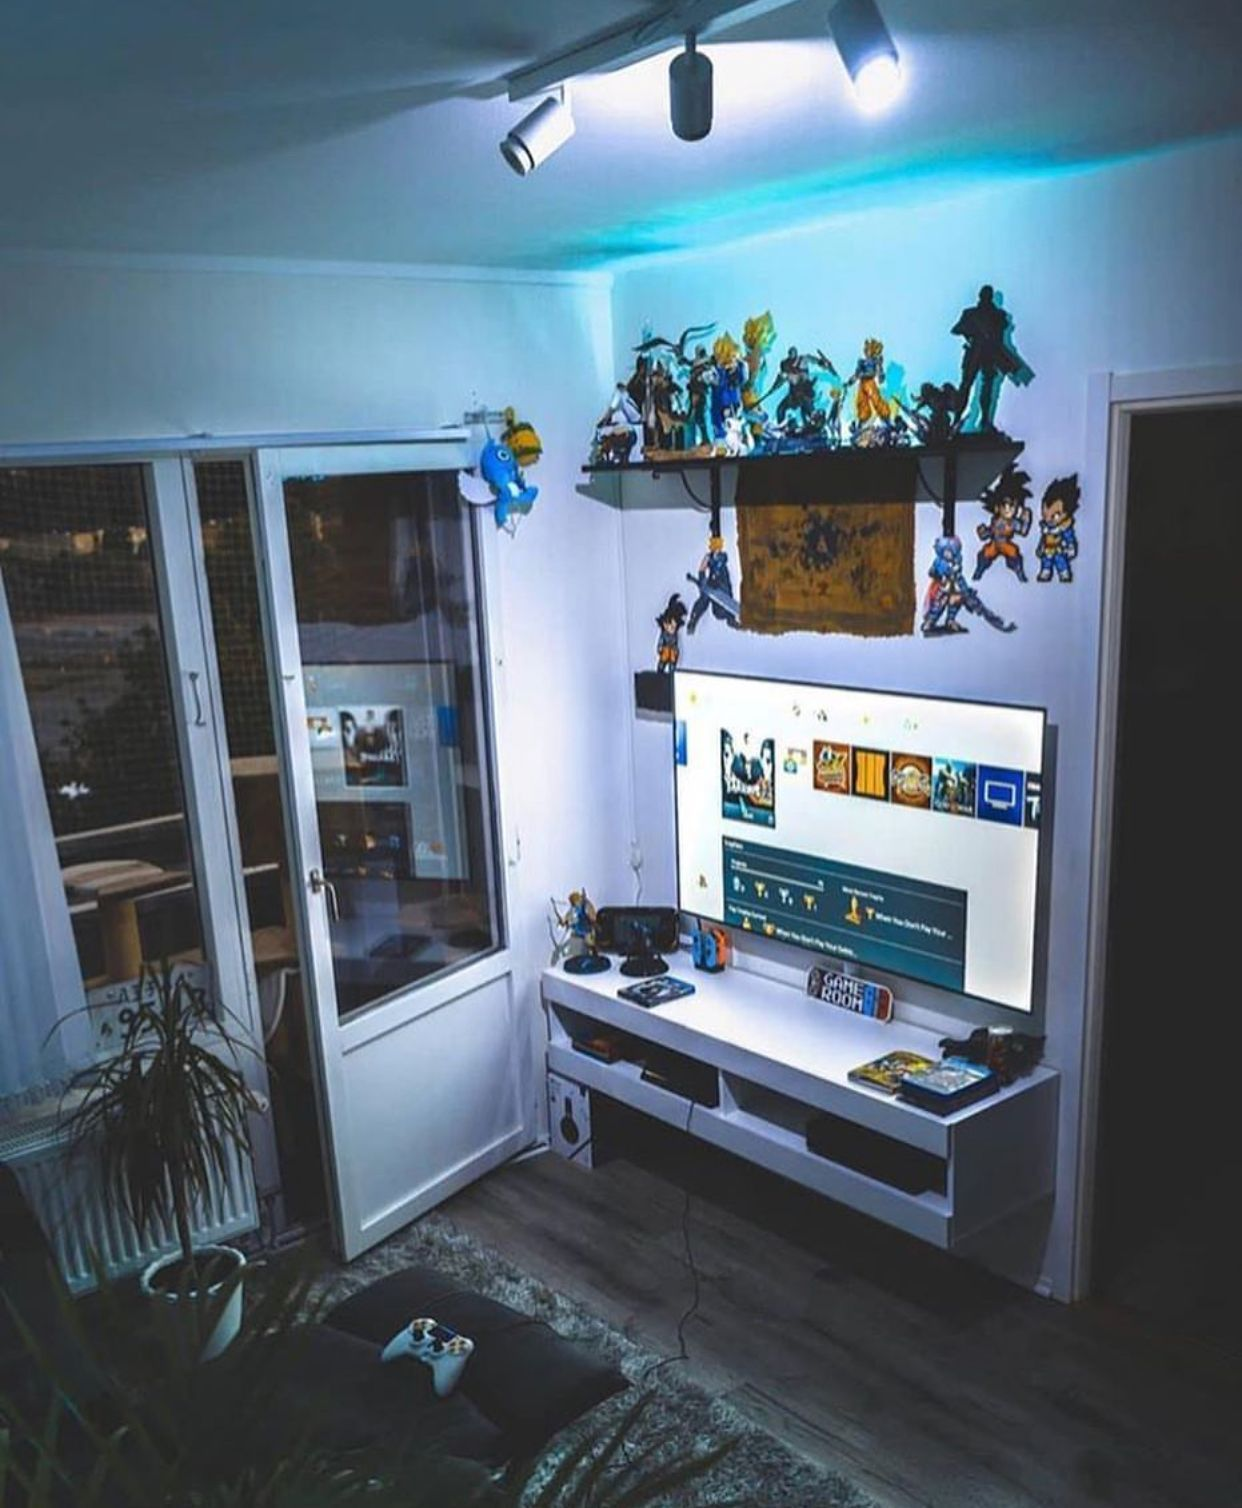 Video Game Room Decoration Ideas You Must See To Know Games Gamer Videogame Decor Decoration Idea Room H Small Game Rooms Tech Room Attic Game Room